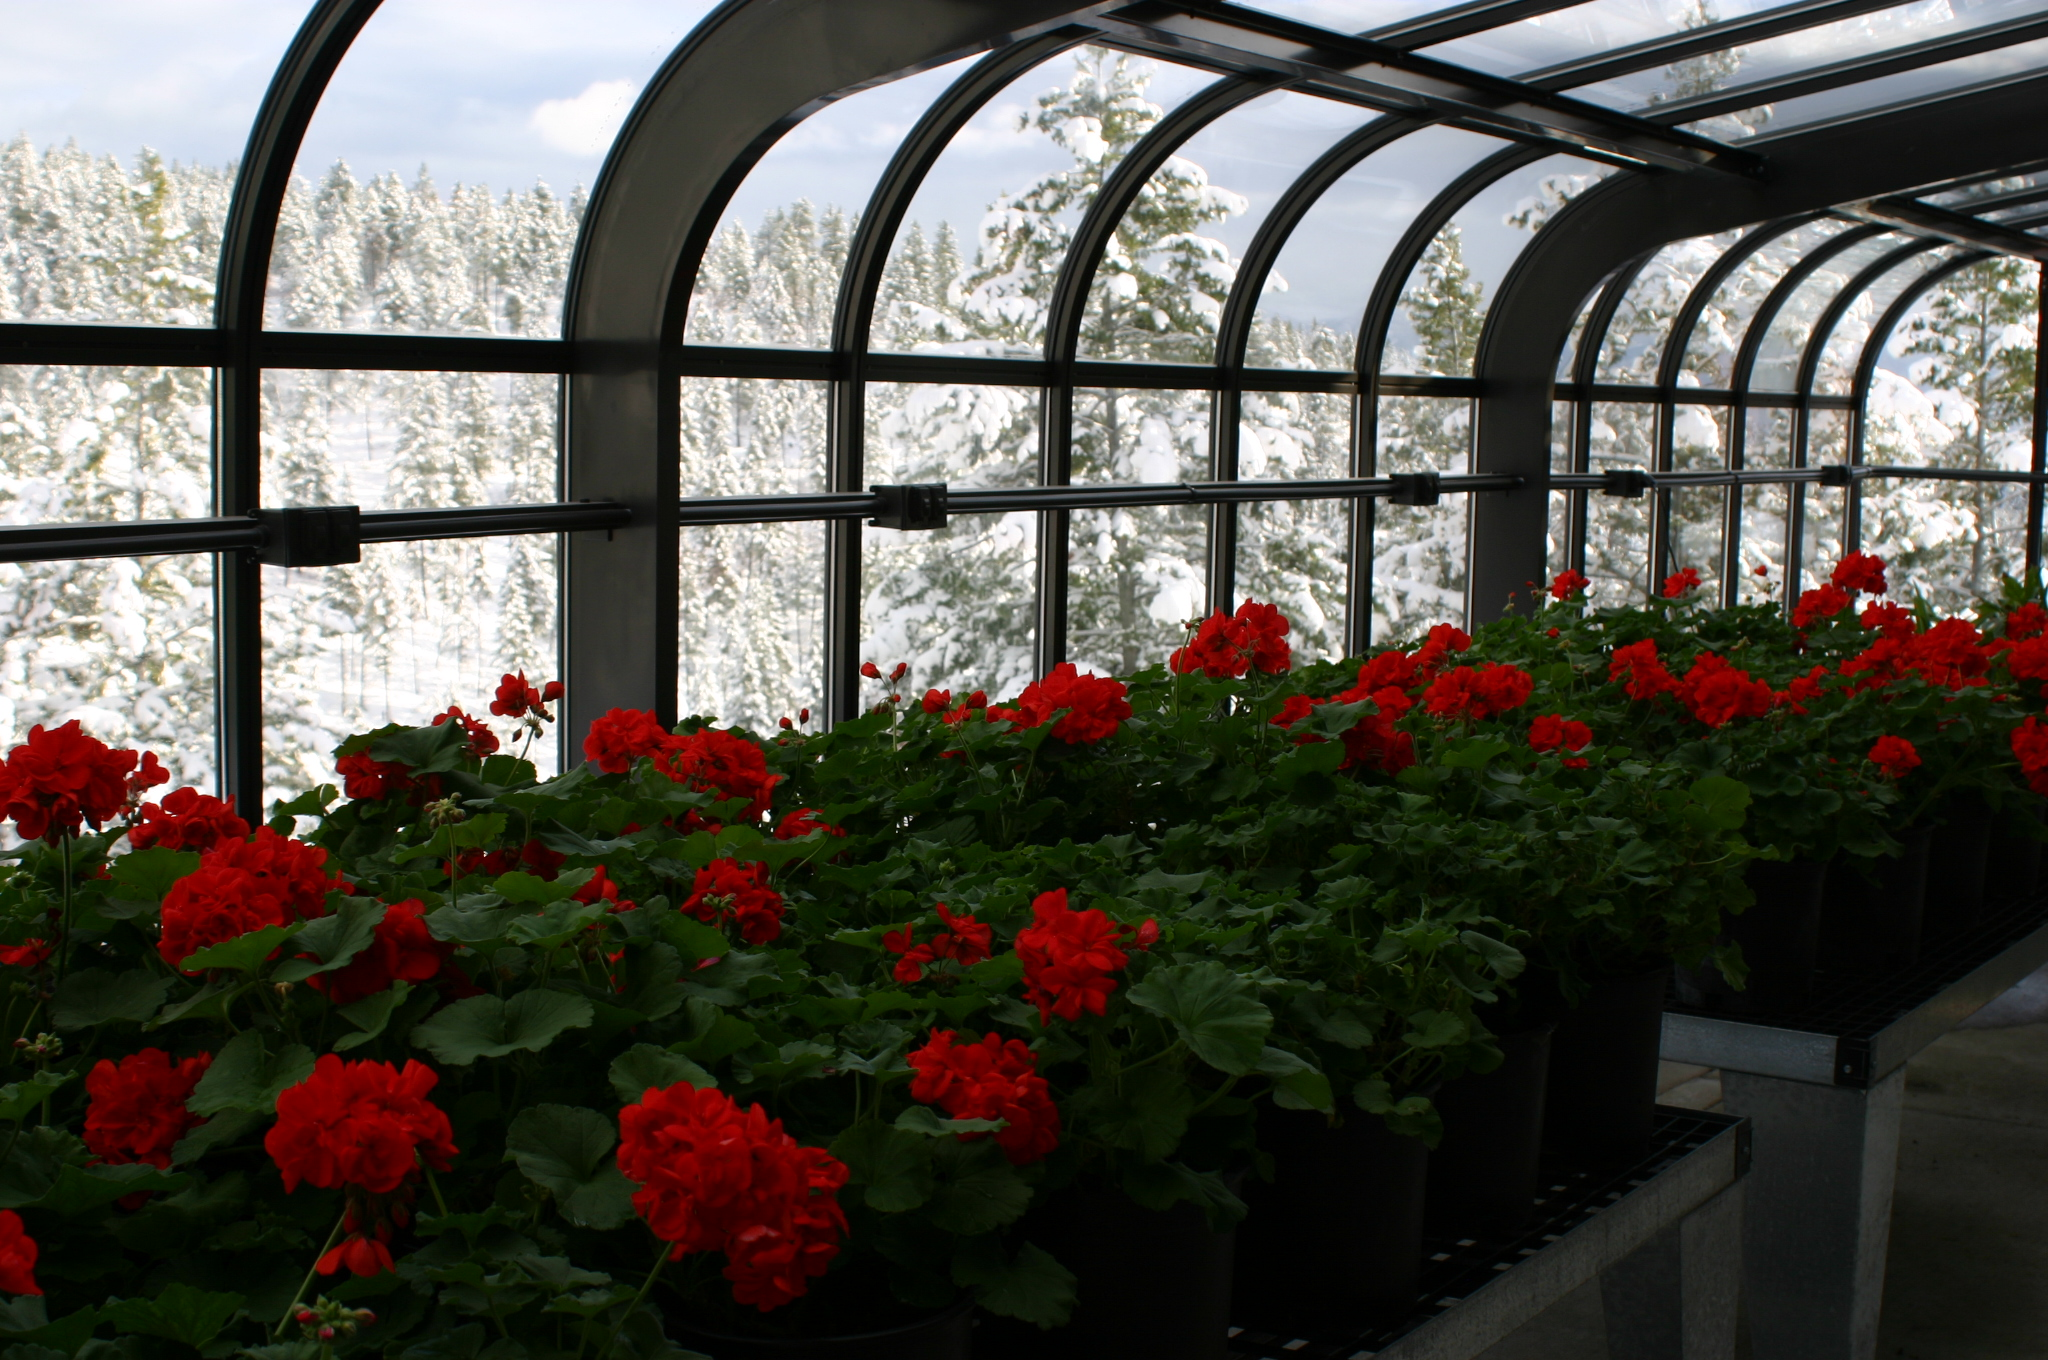 Backyard Greenhouse Winter : At Backyard Greenhouses we offer over 8,000 greenhouse models and